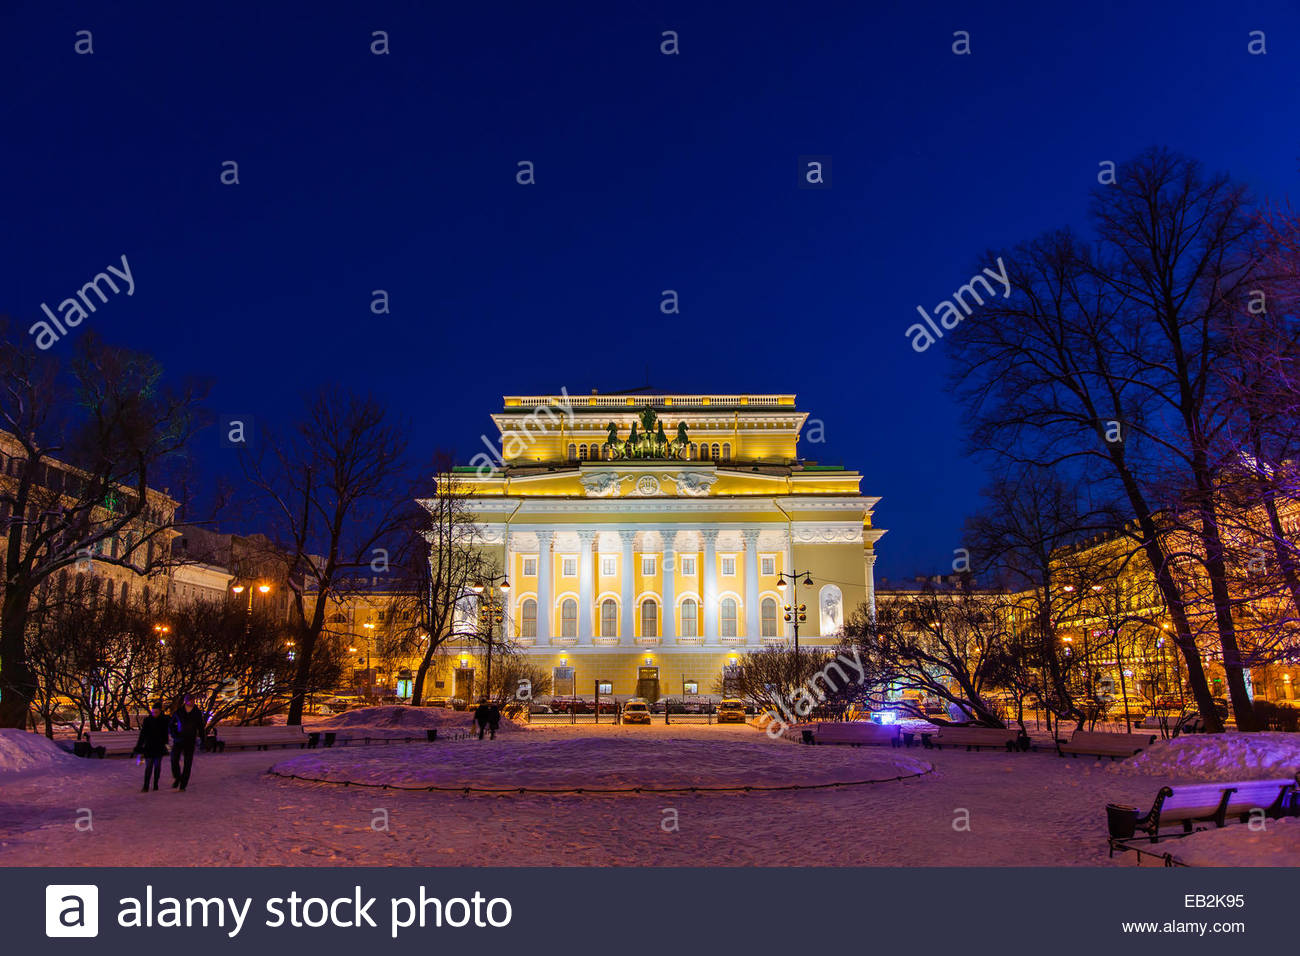 The Alexandrinsky Theatre, or Russian State Pushkin Academy Drama Theater, at night. - Stock Image